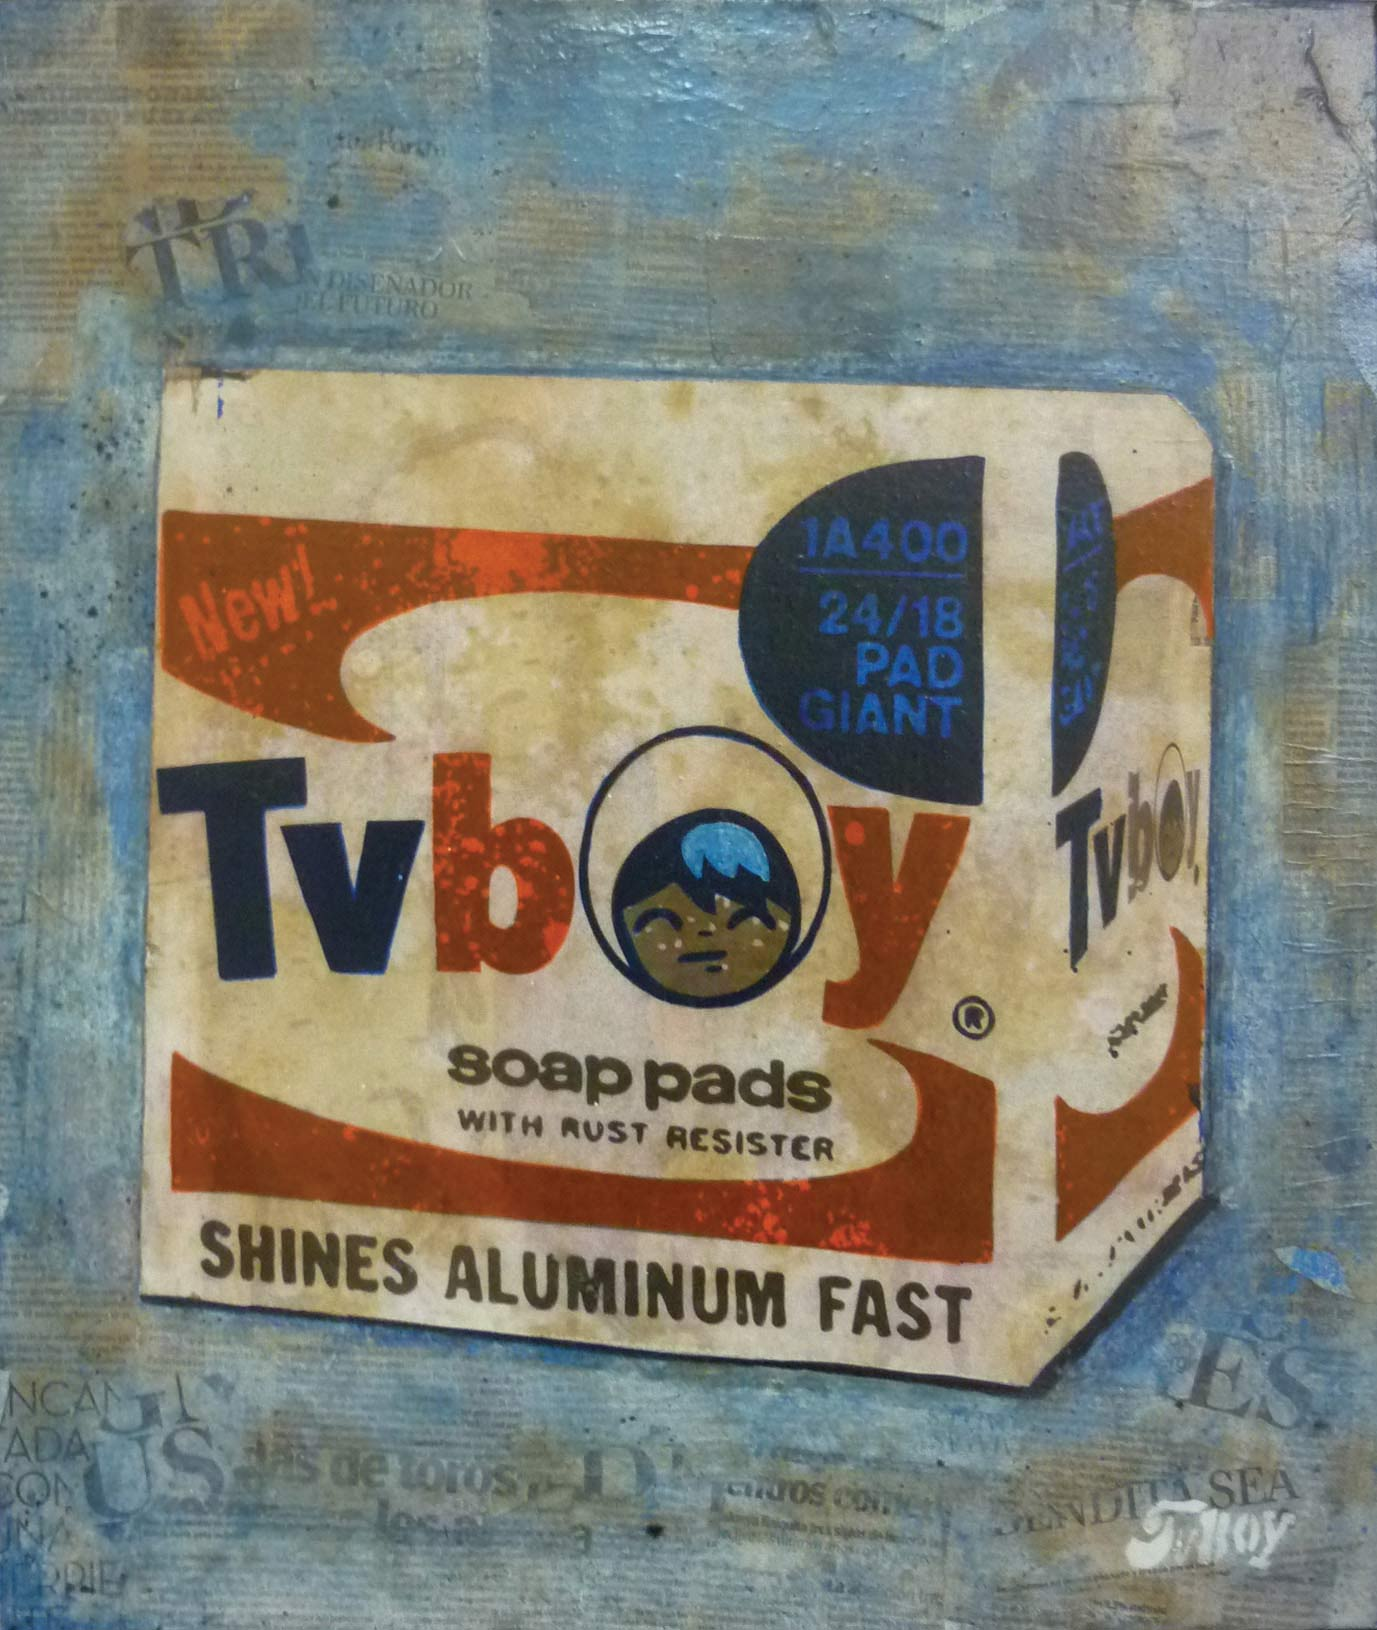 Tv Boy Soap Pads - Tv Boy